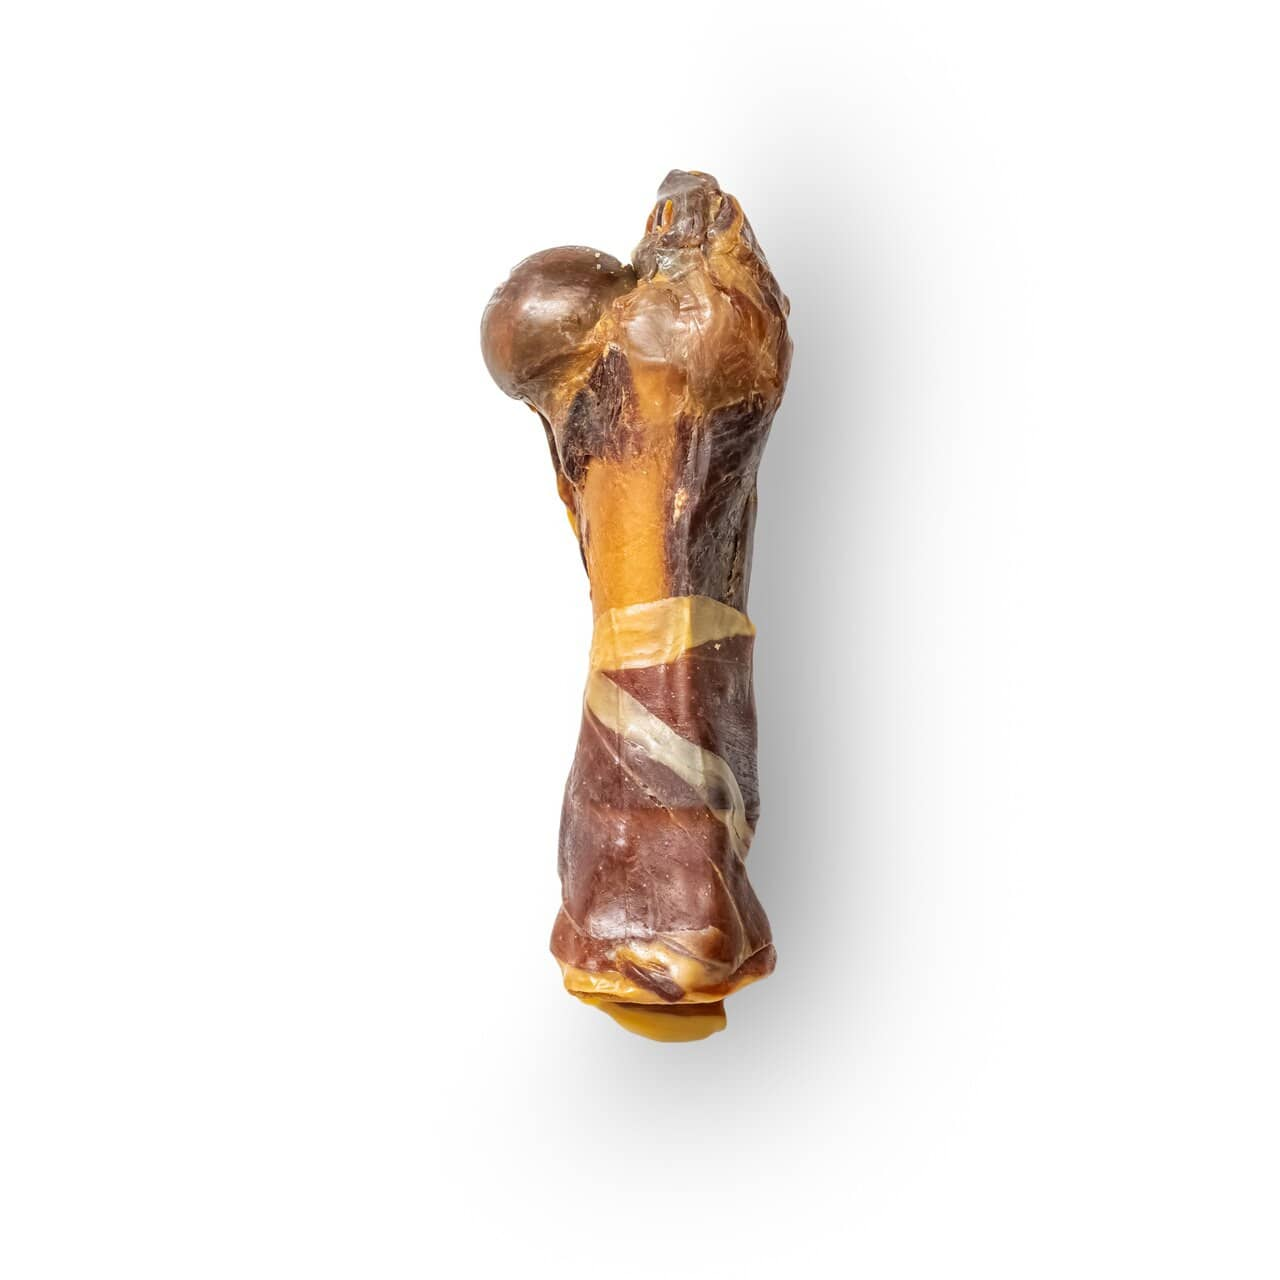 Half Ham Bone Serrano With Jamon | Tasty, Long Lasting, Single Ingredient, All-Natural Dog Chews |